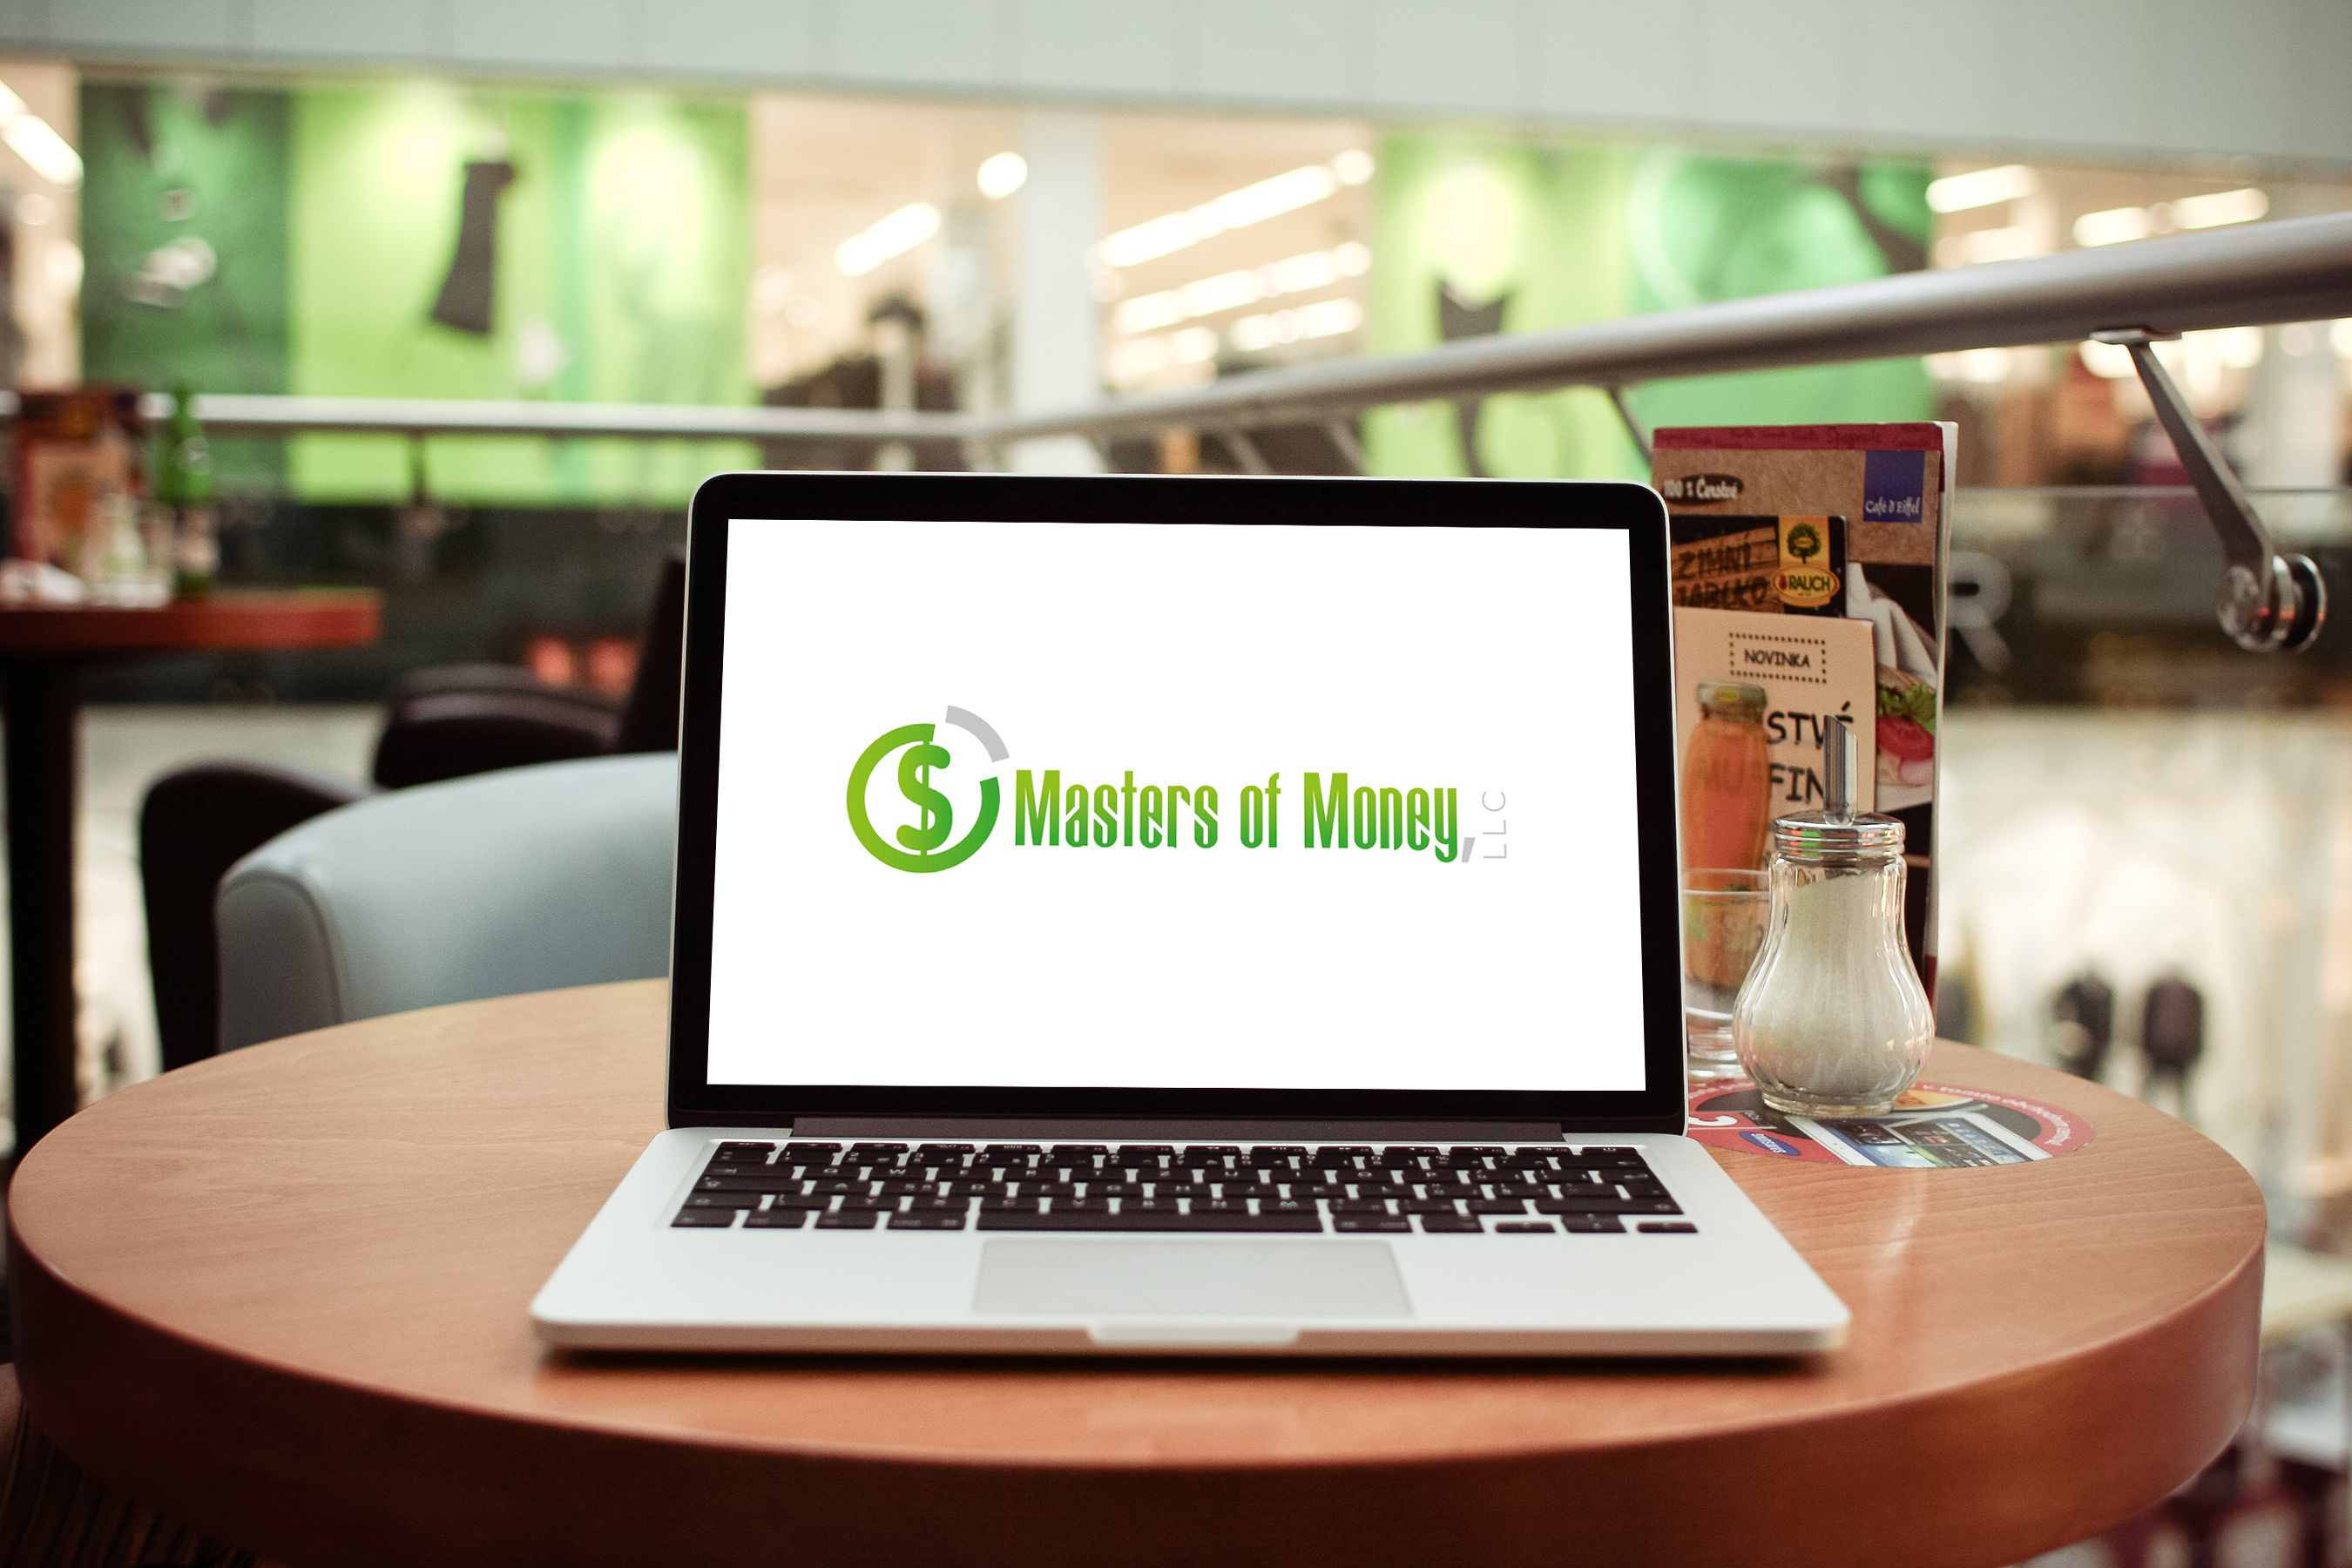 Masters of Money LLC Logo Laptop Screensaver Photo